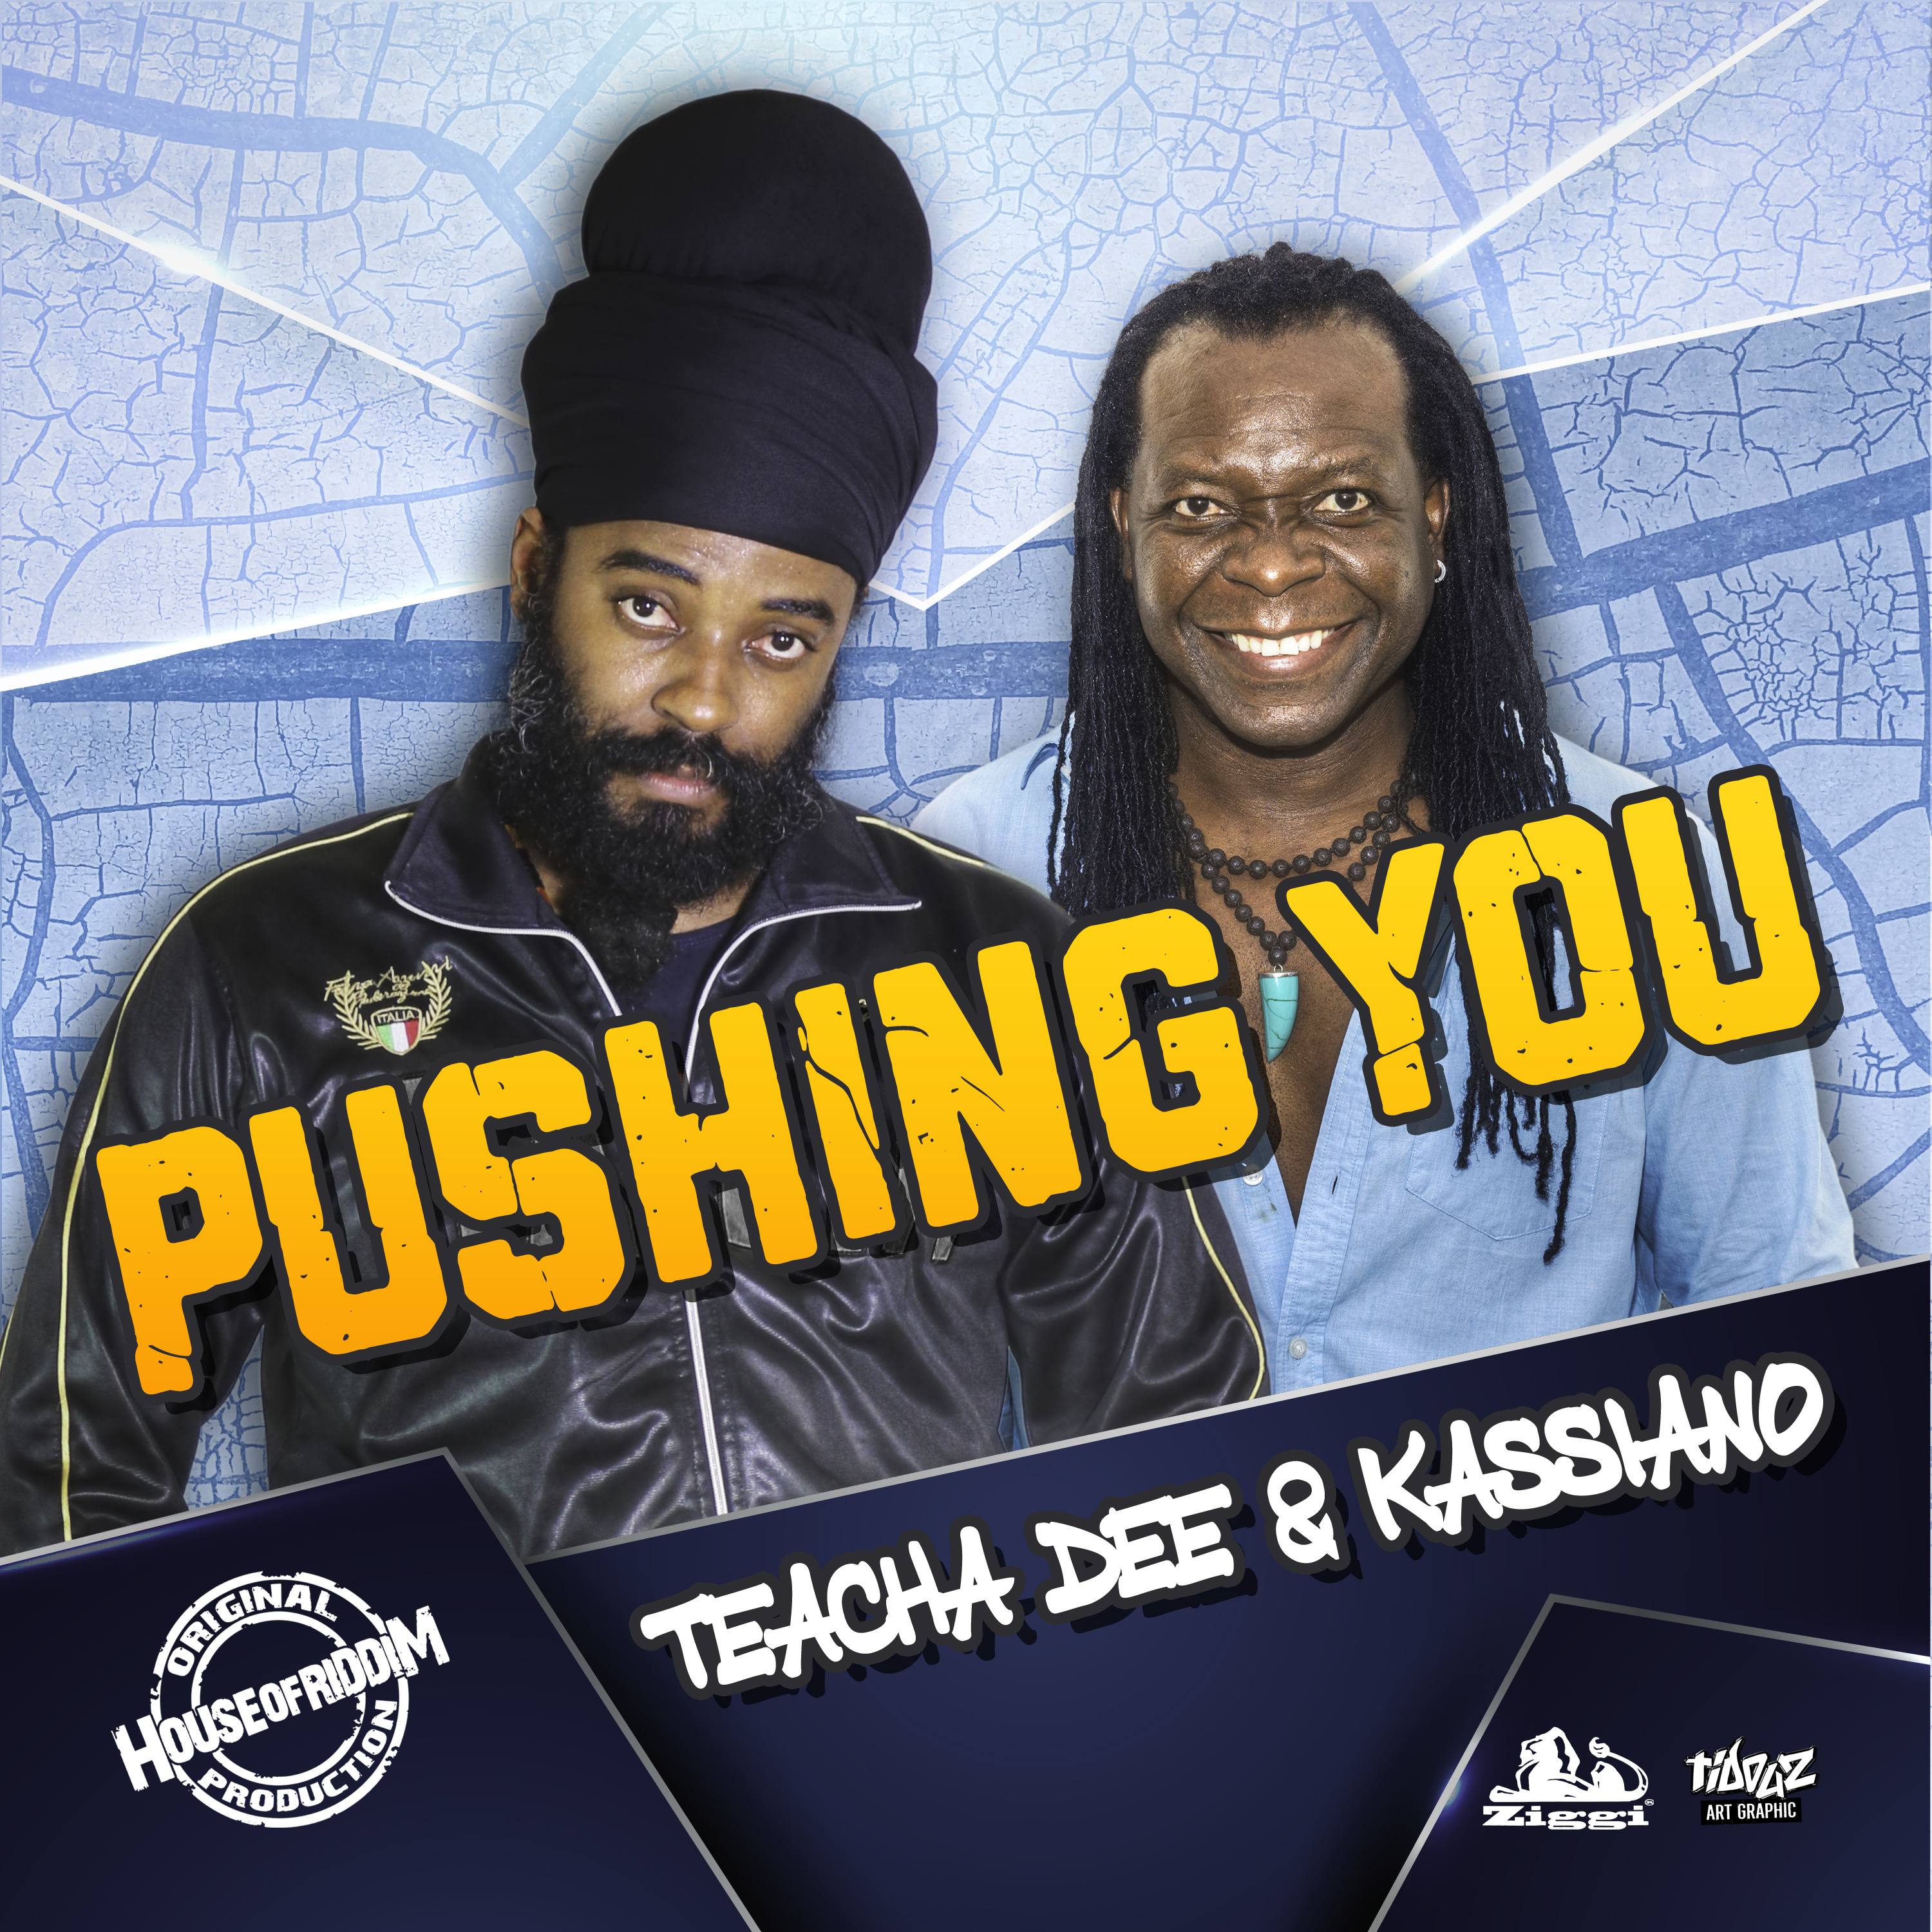 FRONT-TEACHA-DEE-KASSIANO-PUSHING-YOU-HOR-2018